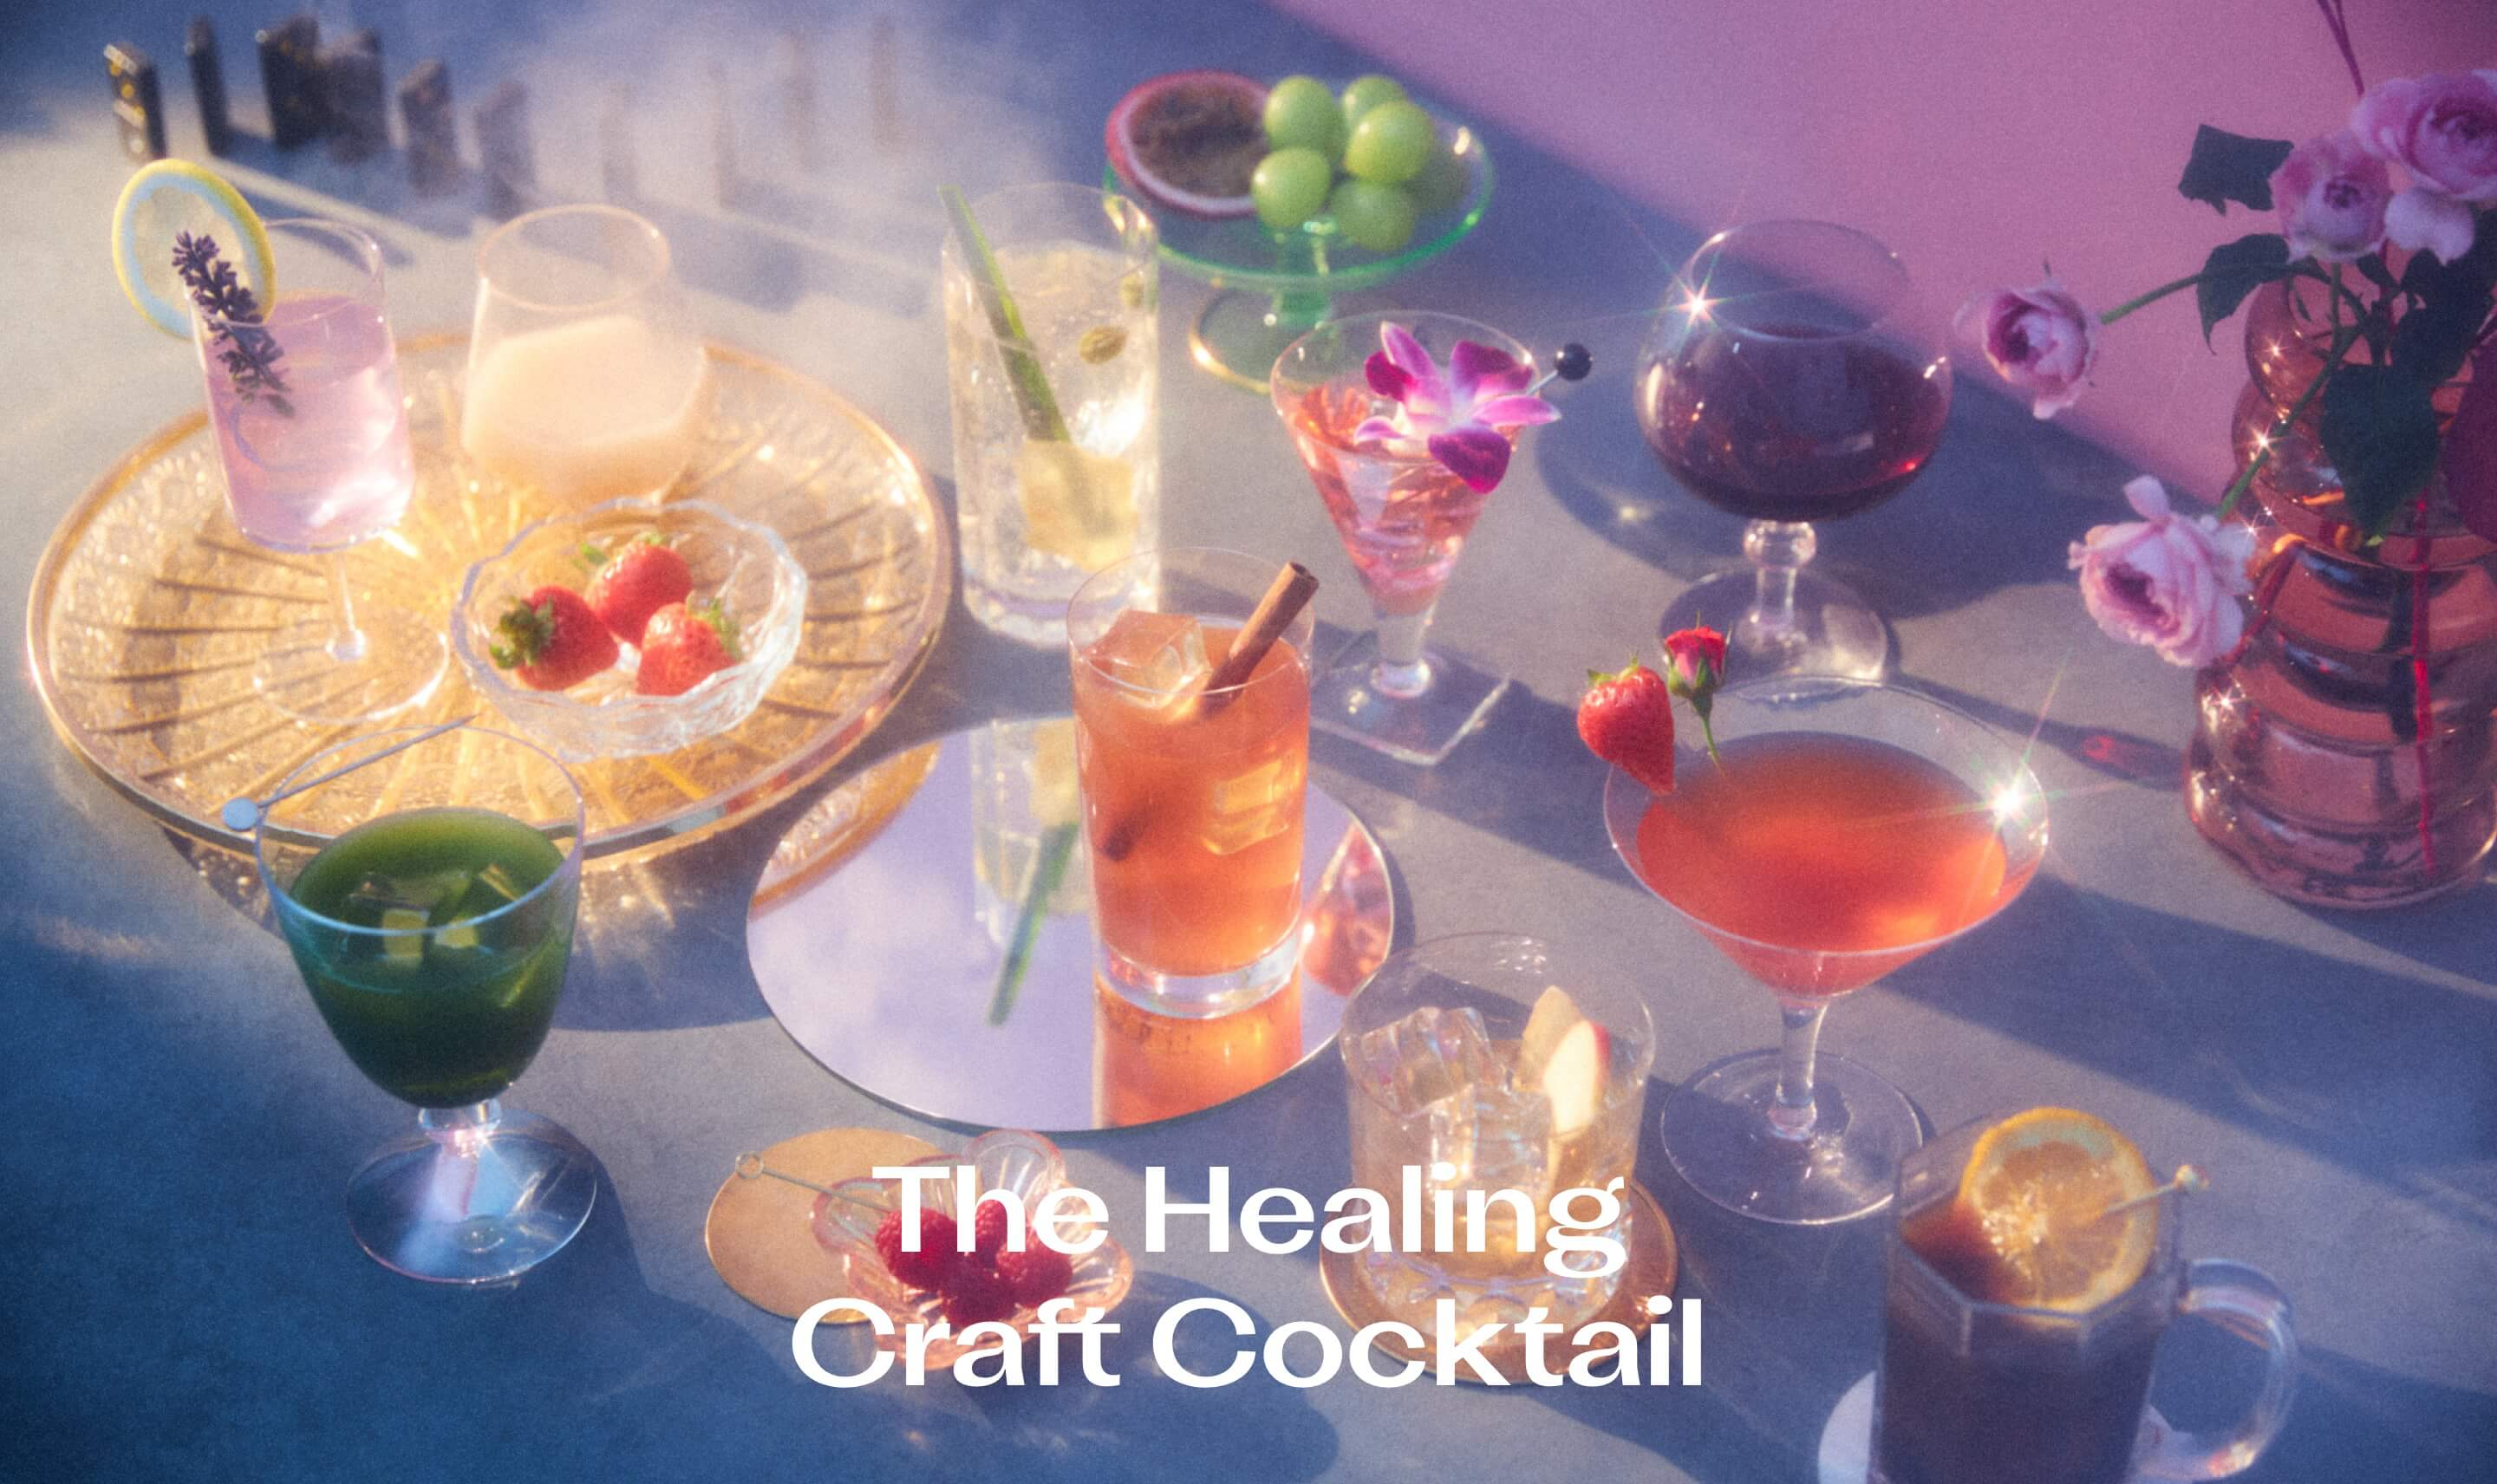 The Healing Craft Cocktail